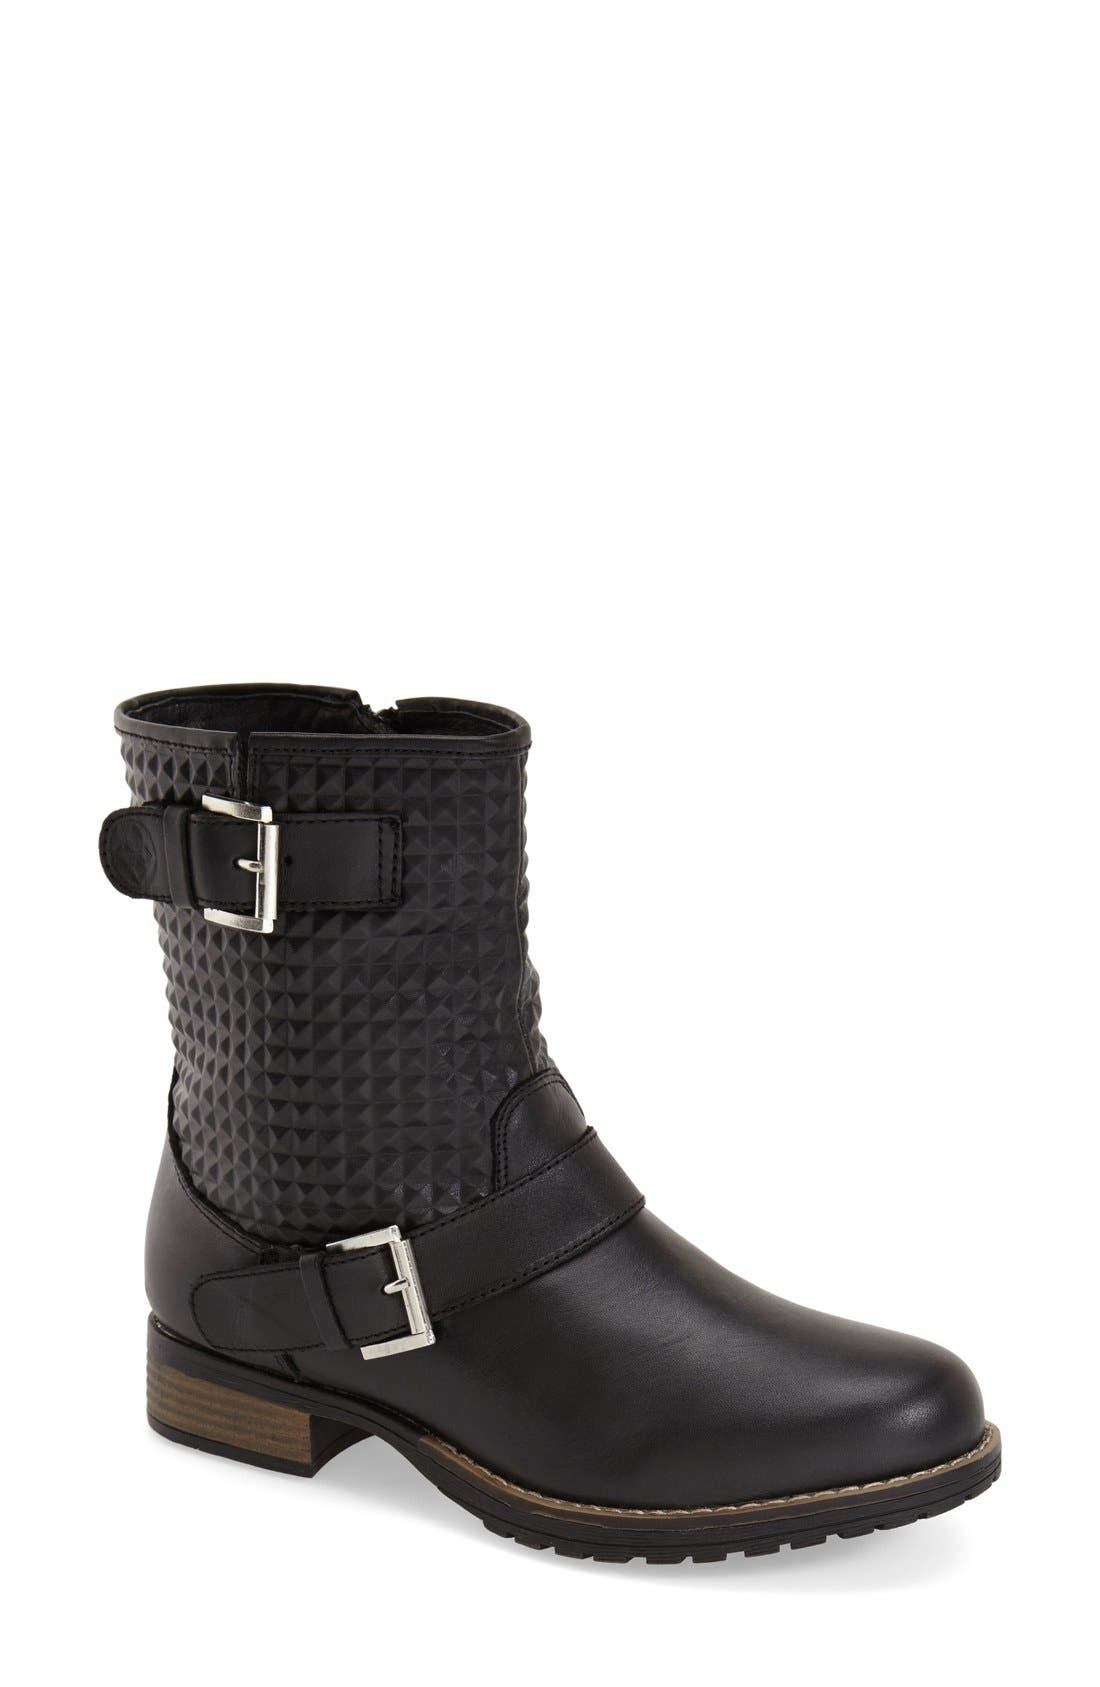 Alternate Image 1 Selected - däv 'Granada' Waterproof Pyramid Studded Boot (Women)